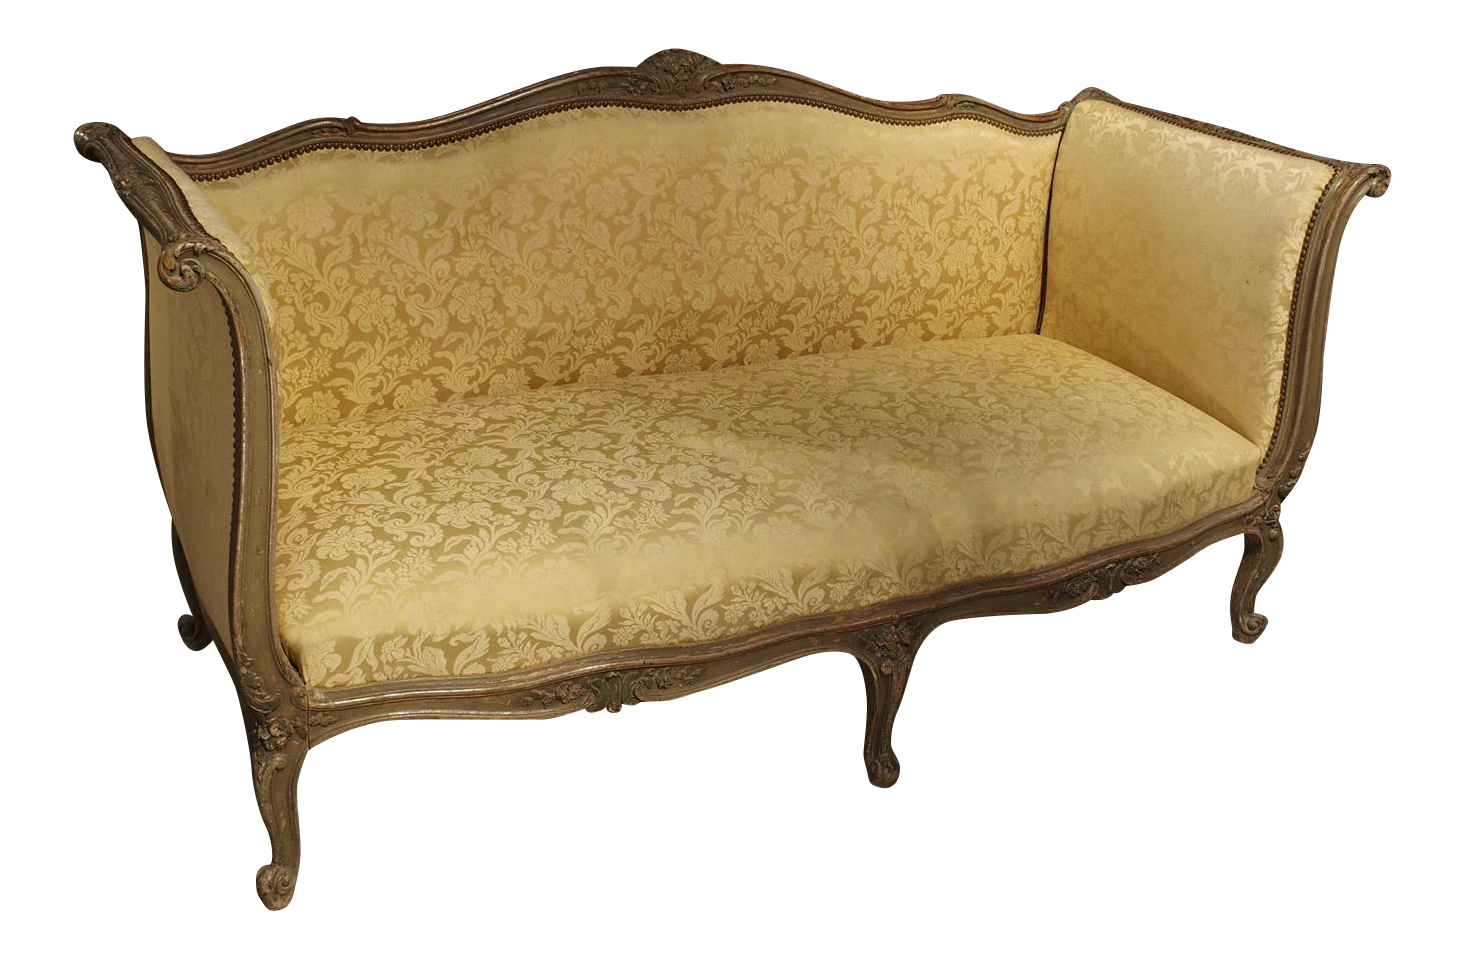 Exquisite Painted Antique French Louis XV Style Canape, 19th Century |  DECASO